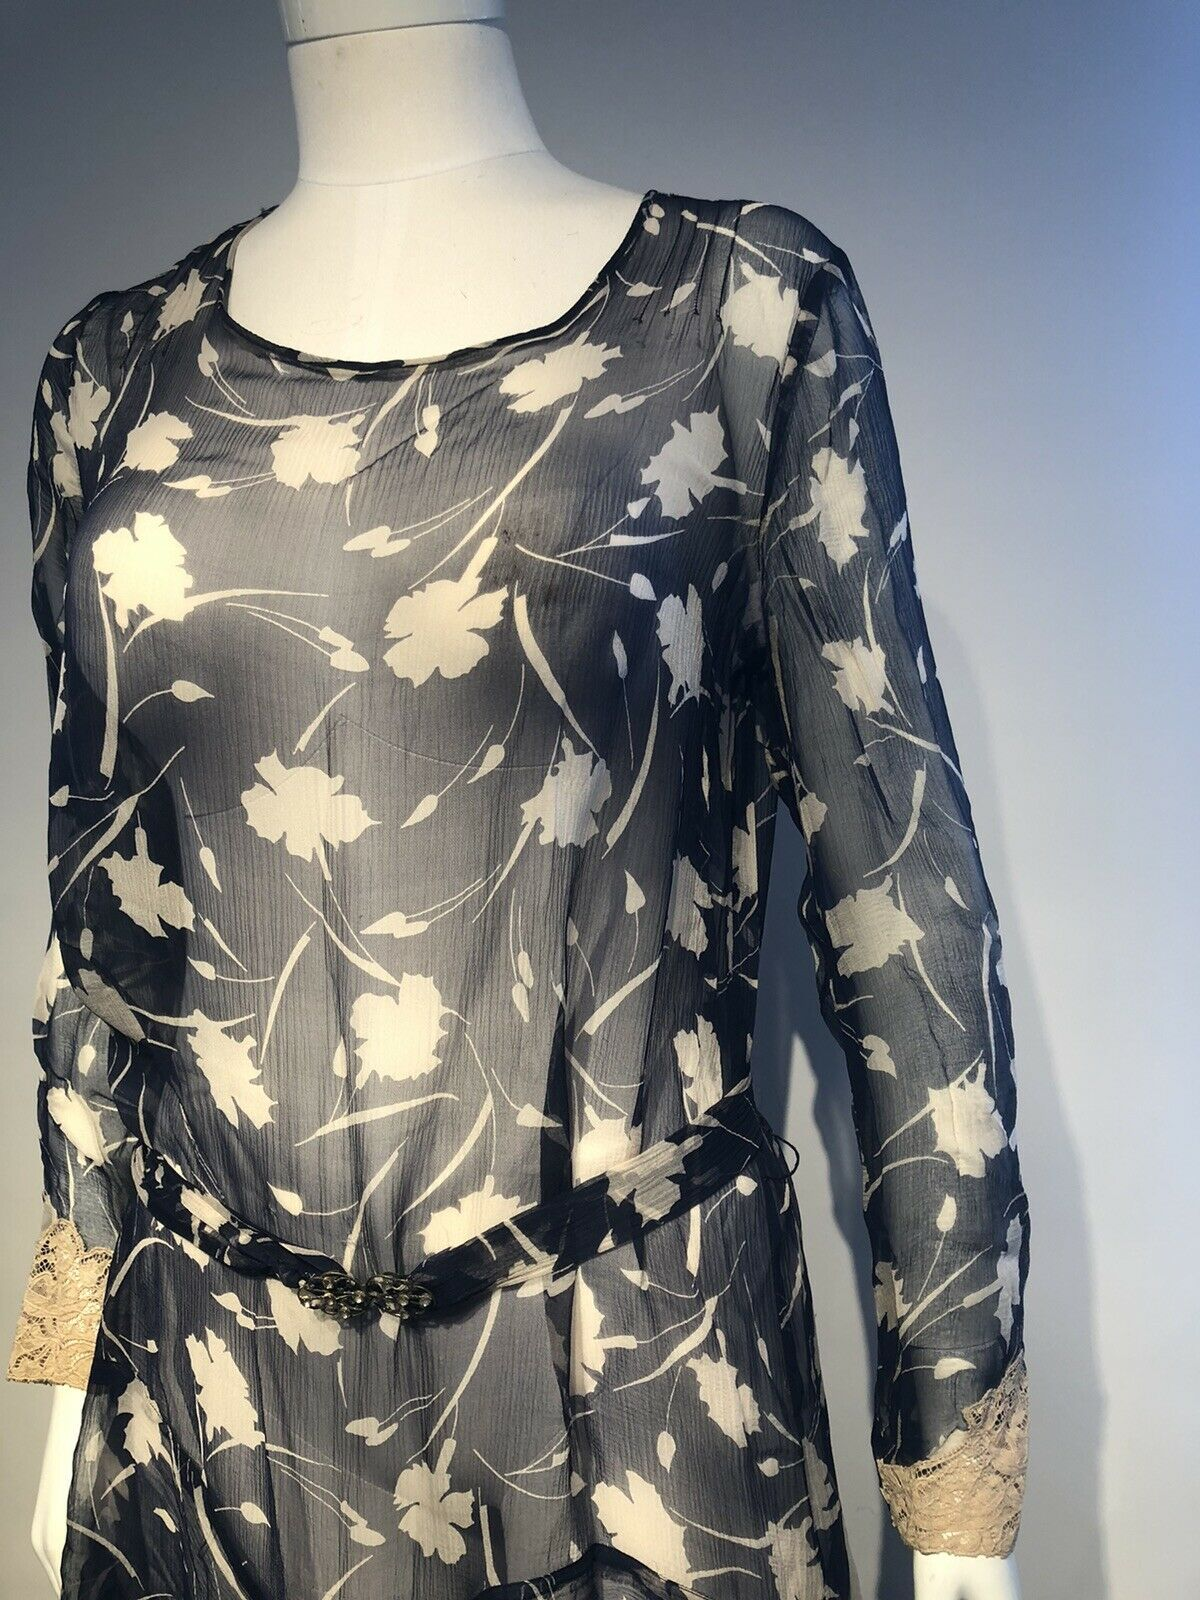 1920's Printed Silk Chiffon Dress  - image 11